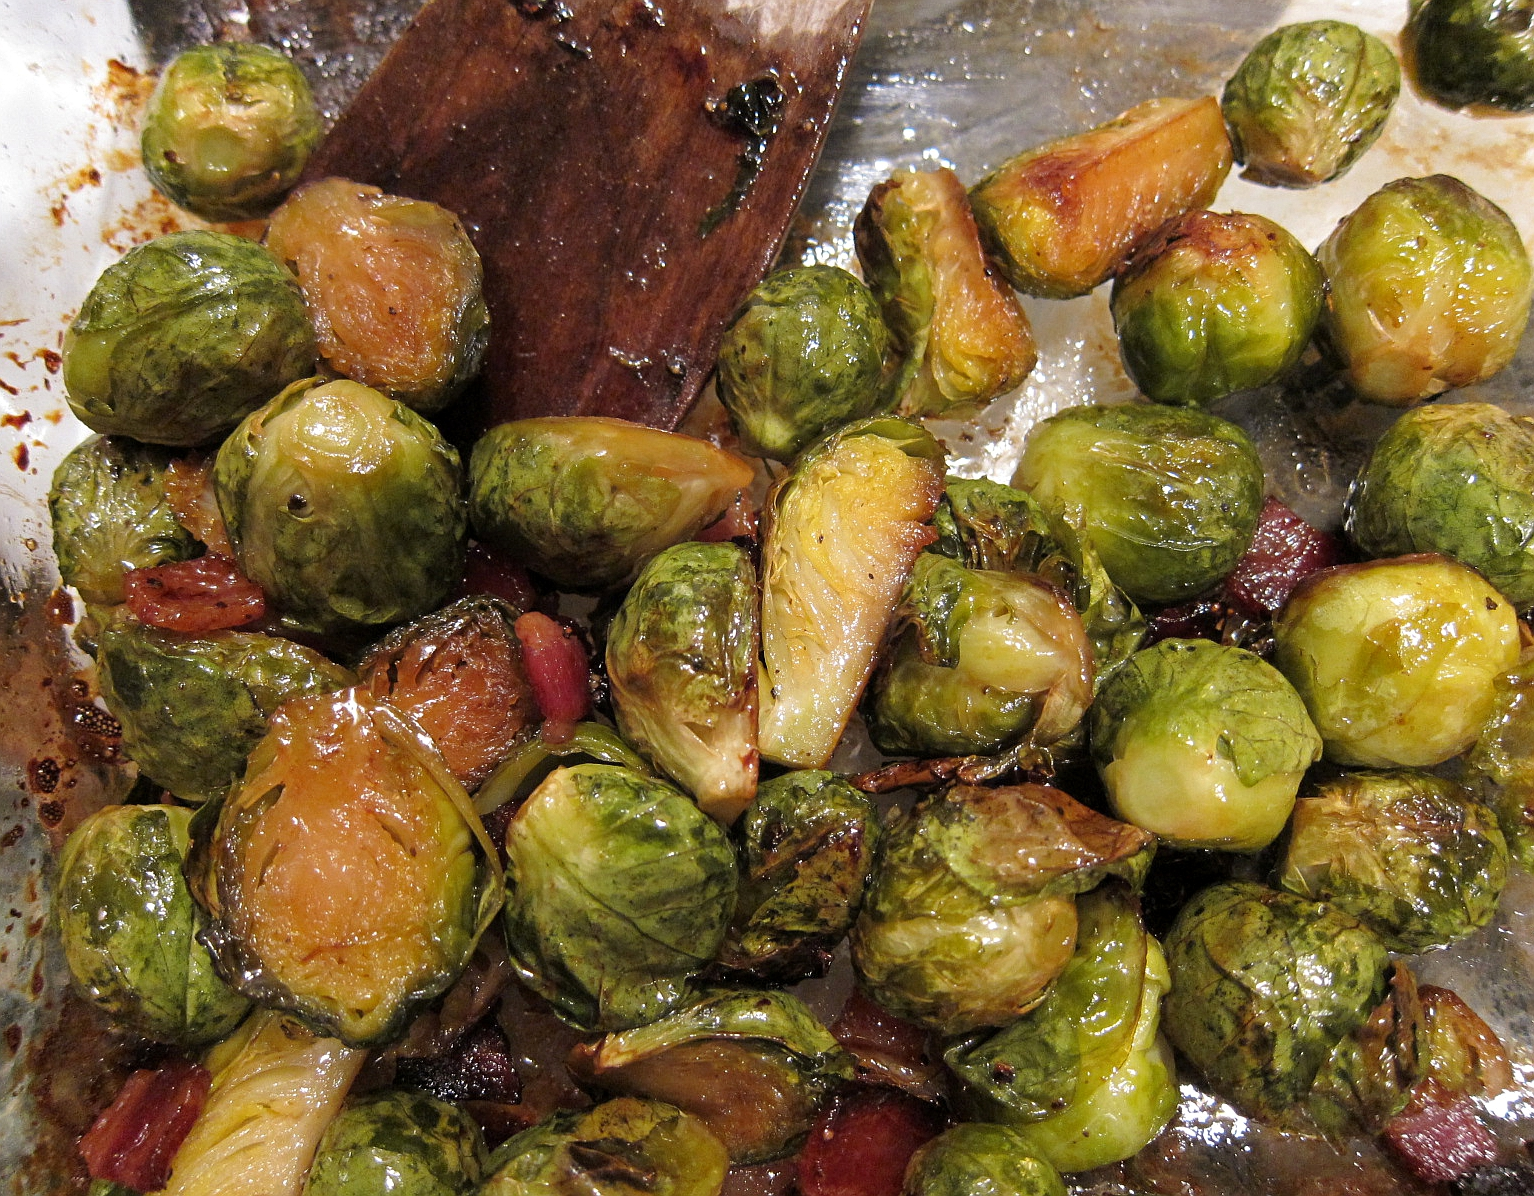 ... call for corn: roasted brussels sprouts with bacon and maple syrup